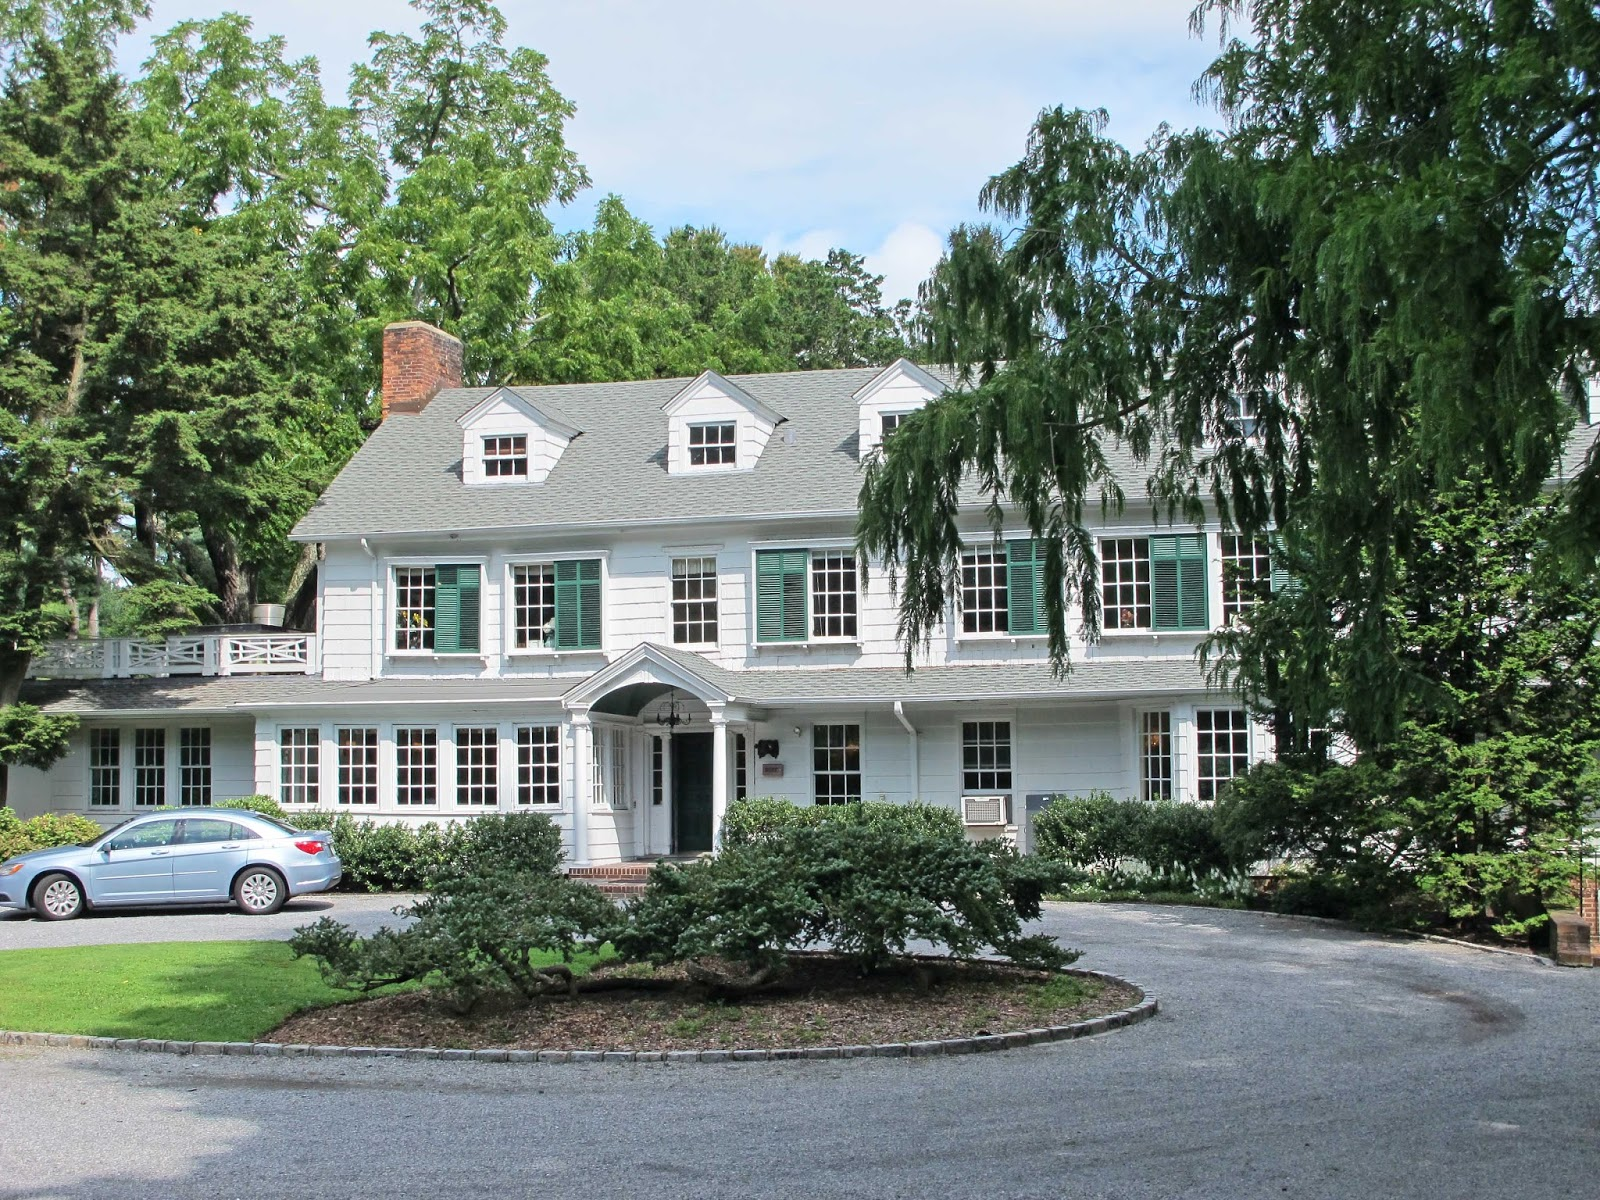 locust valley single personals Locust valley has some of the hottest nightlife, attractions, and things to do on long island, and if you're looking to go out and have a good time, you won't have to go far.